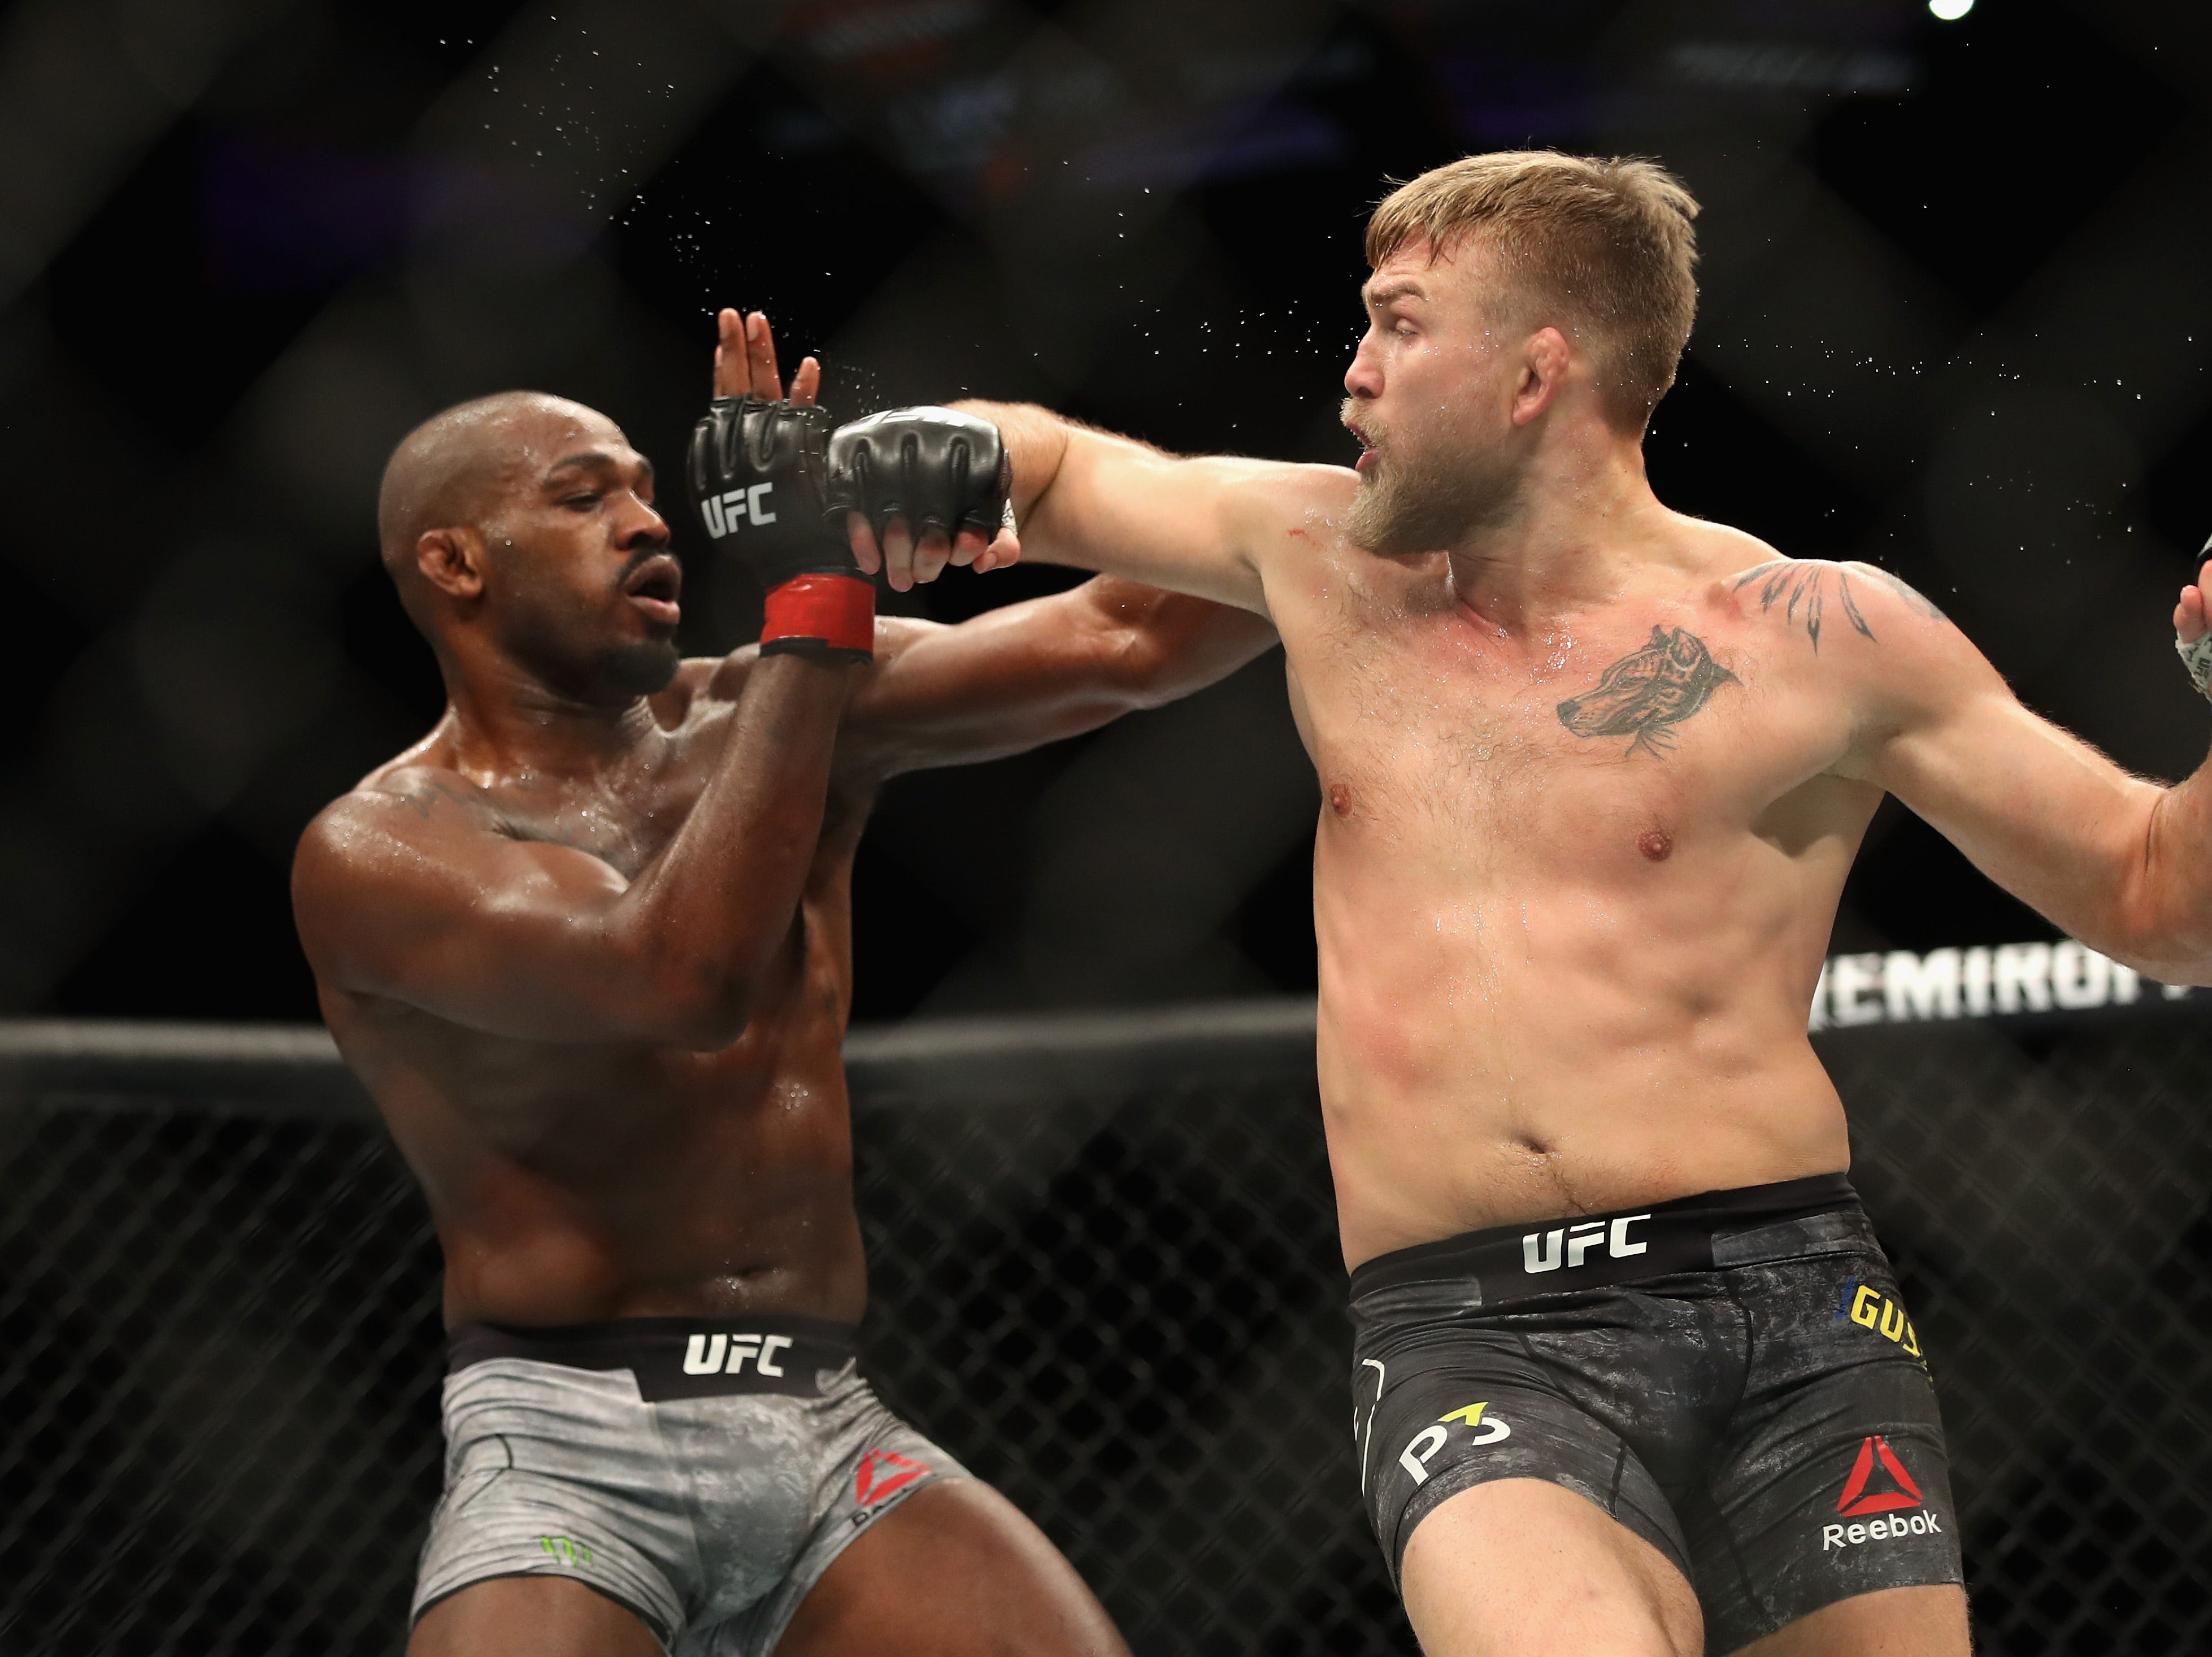 INGLEWOOD, CA - DECEMBER 29:  Jon Jones (left) avoids a punch by Alexander Gustafsson of Sweden (right) during a Light Heavyweight titlebout during the UFC 232 event inside The Forum on December 29, 2018 in Inglewood, California.   Jones defeated Gustafsson by KO.  (Photo by Sean M. Haffey/Getty Images)